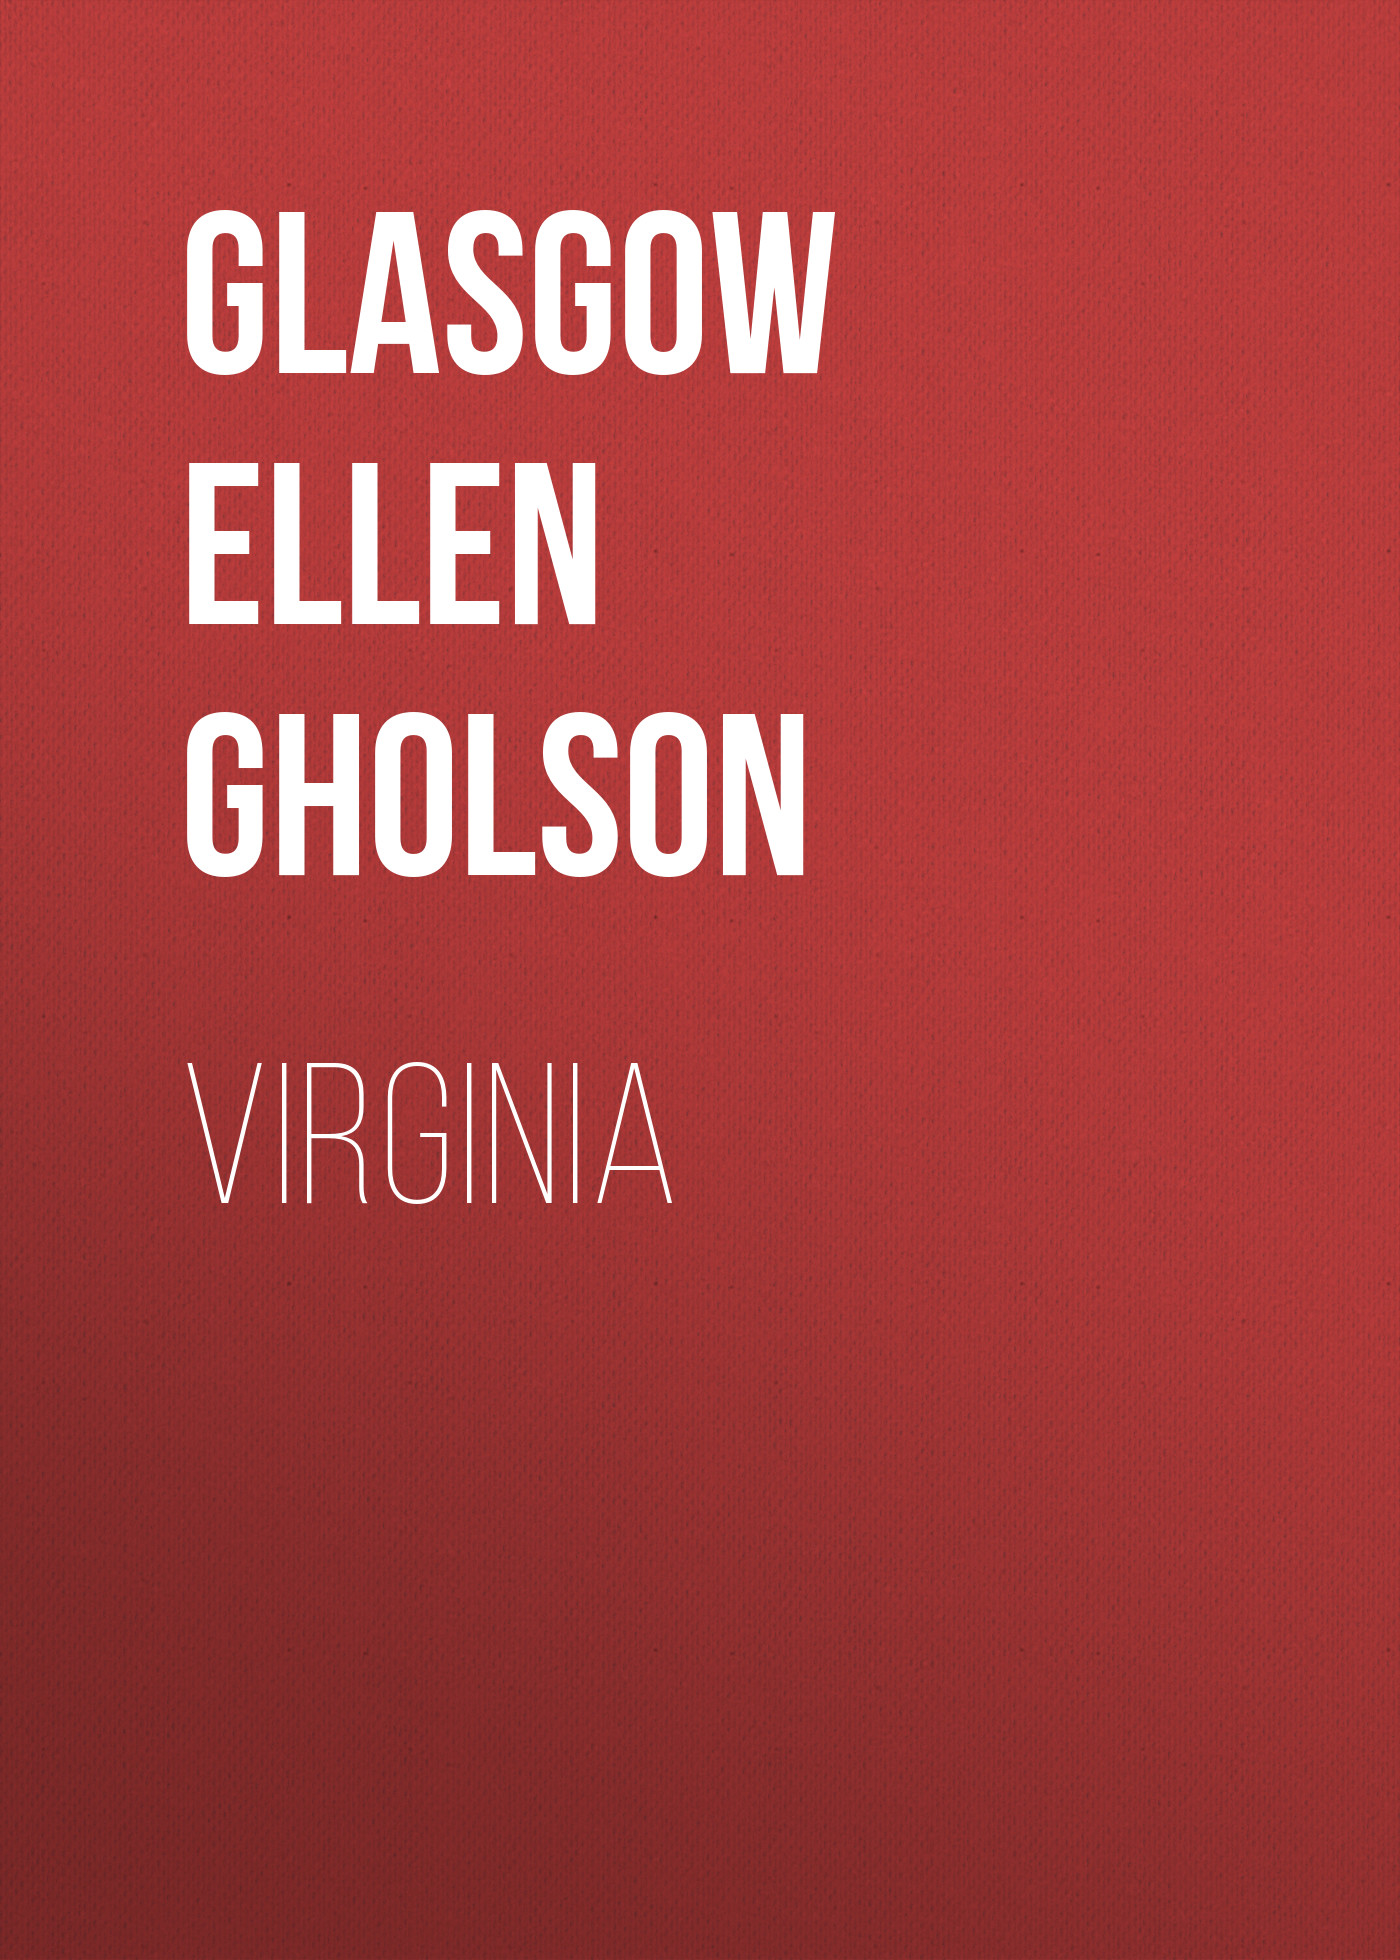 Glasgow Ellen Anderson Gholson Virginia shinedown glasgow